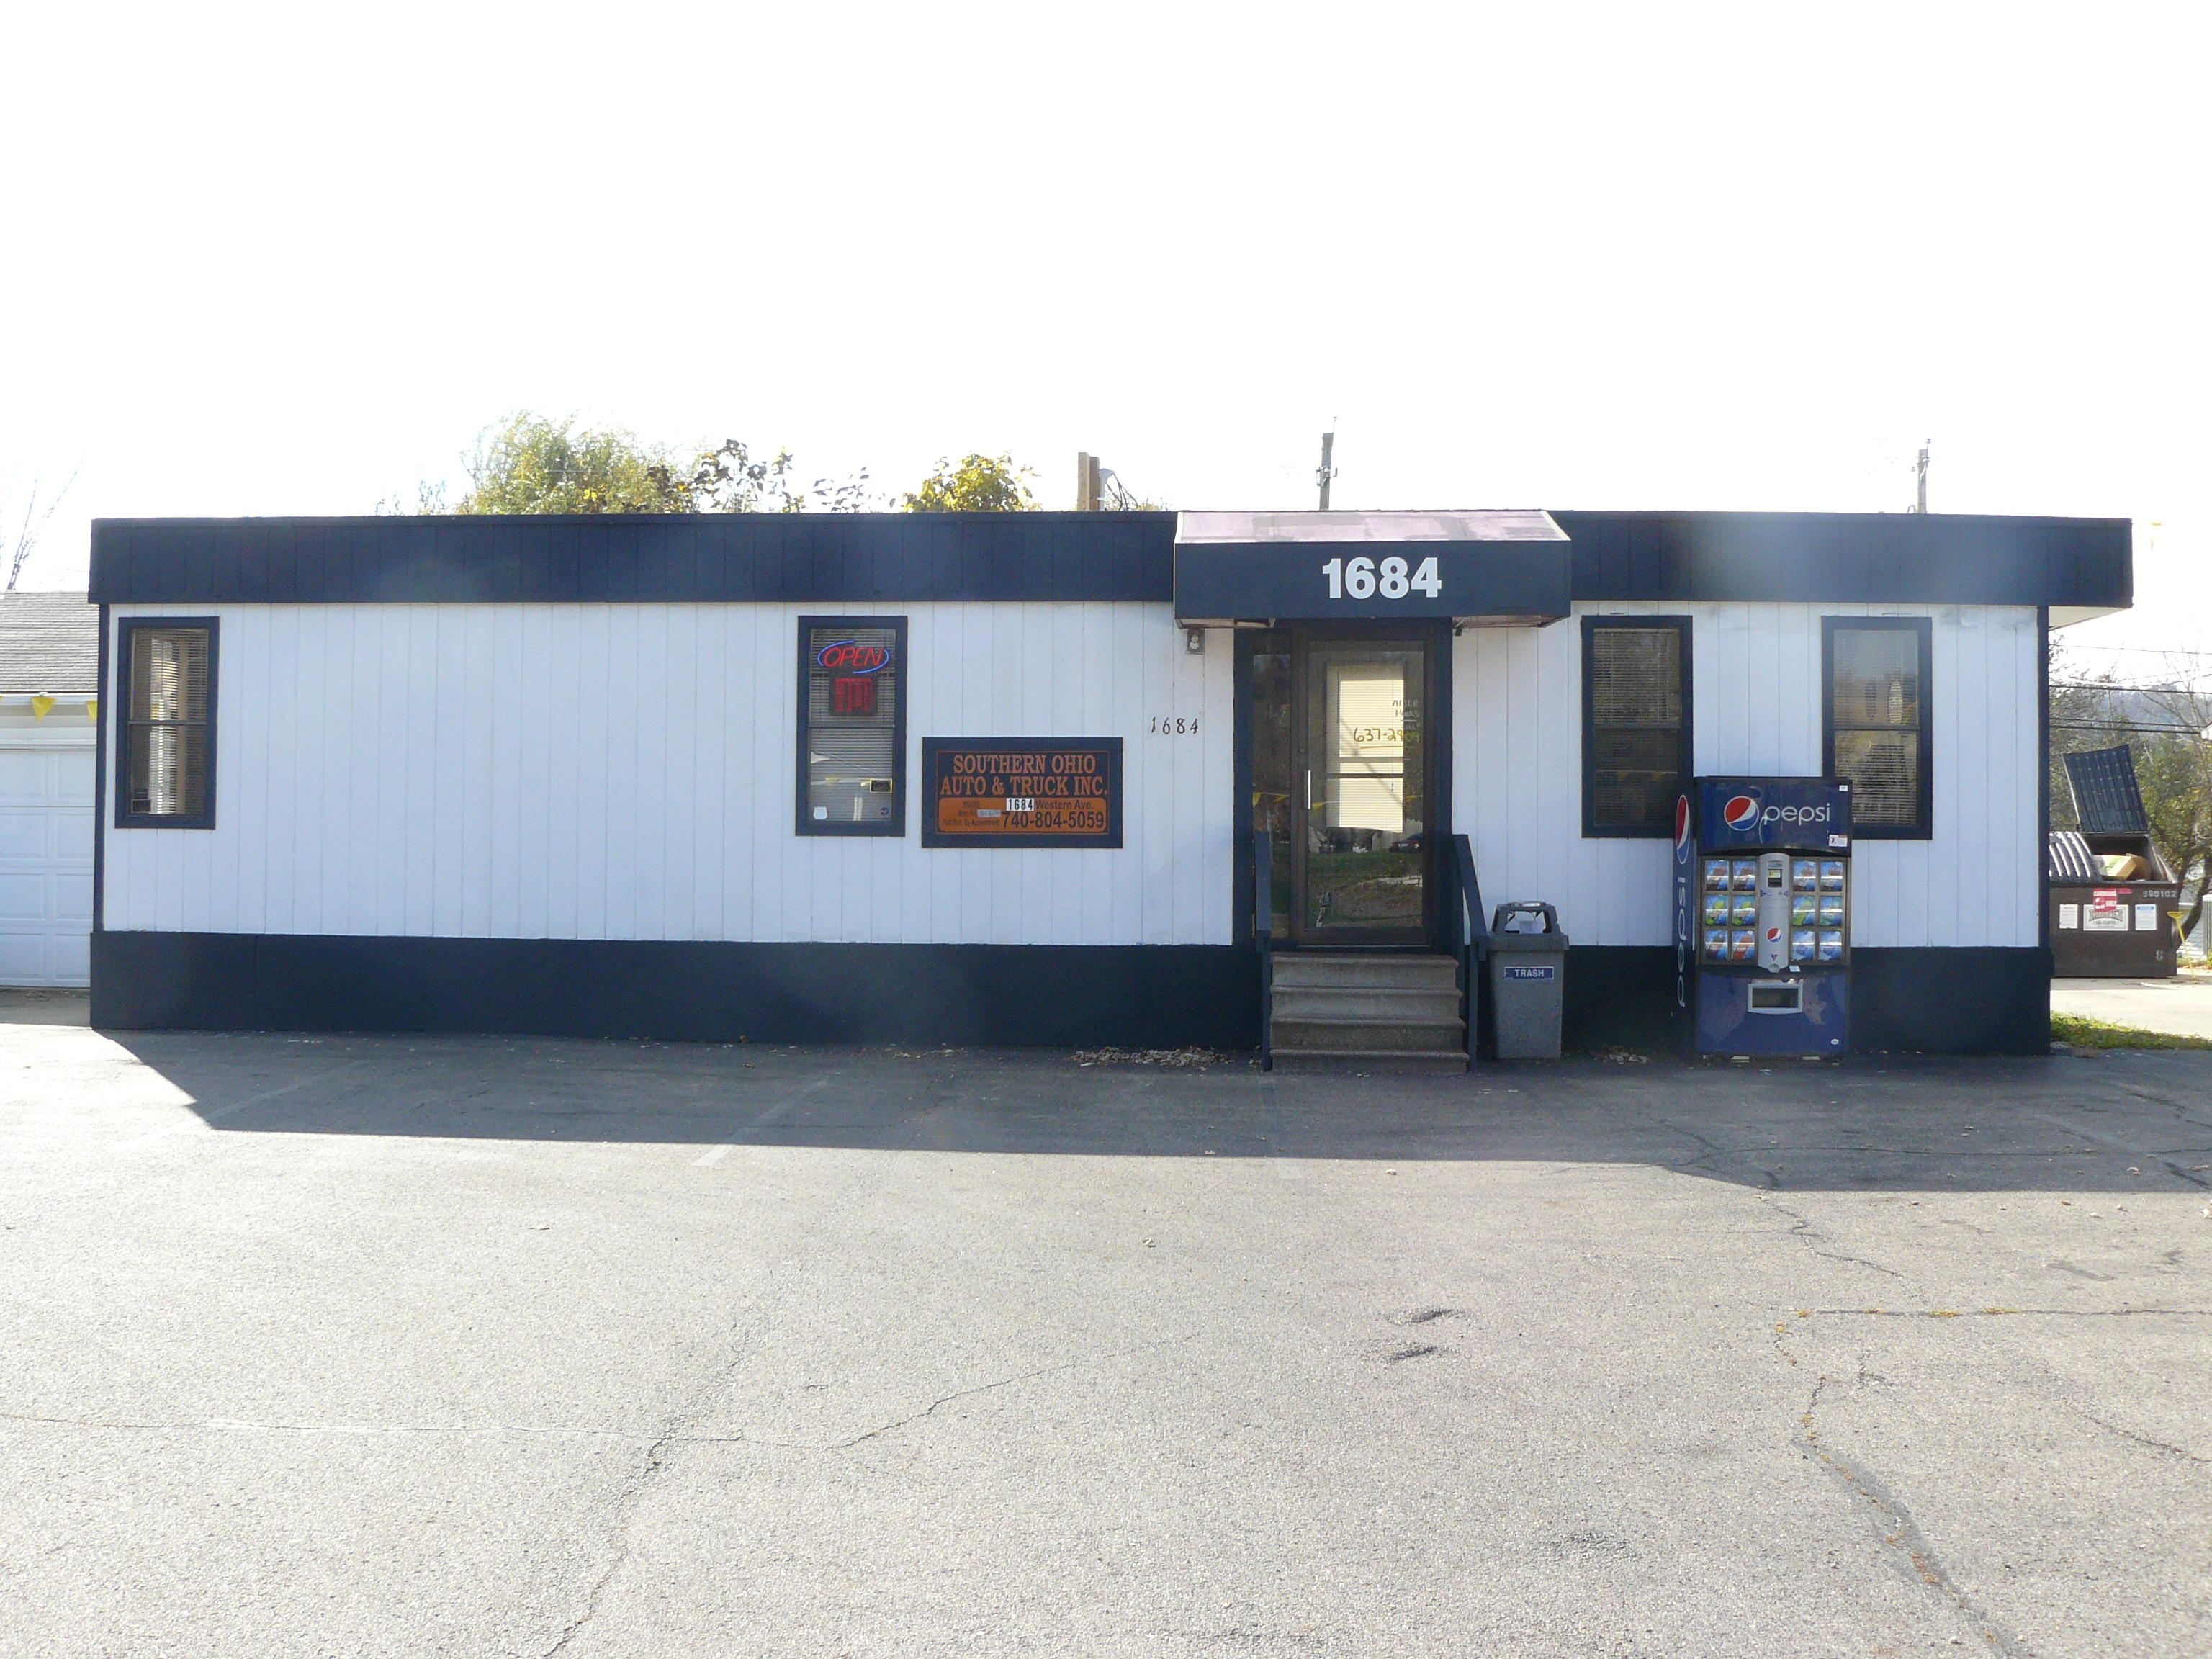 Southern Ohio Auto and Truck, Chillicothe OH